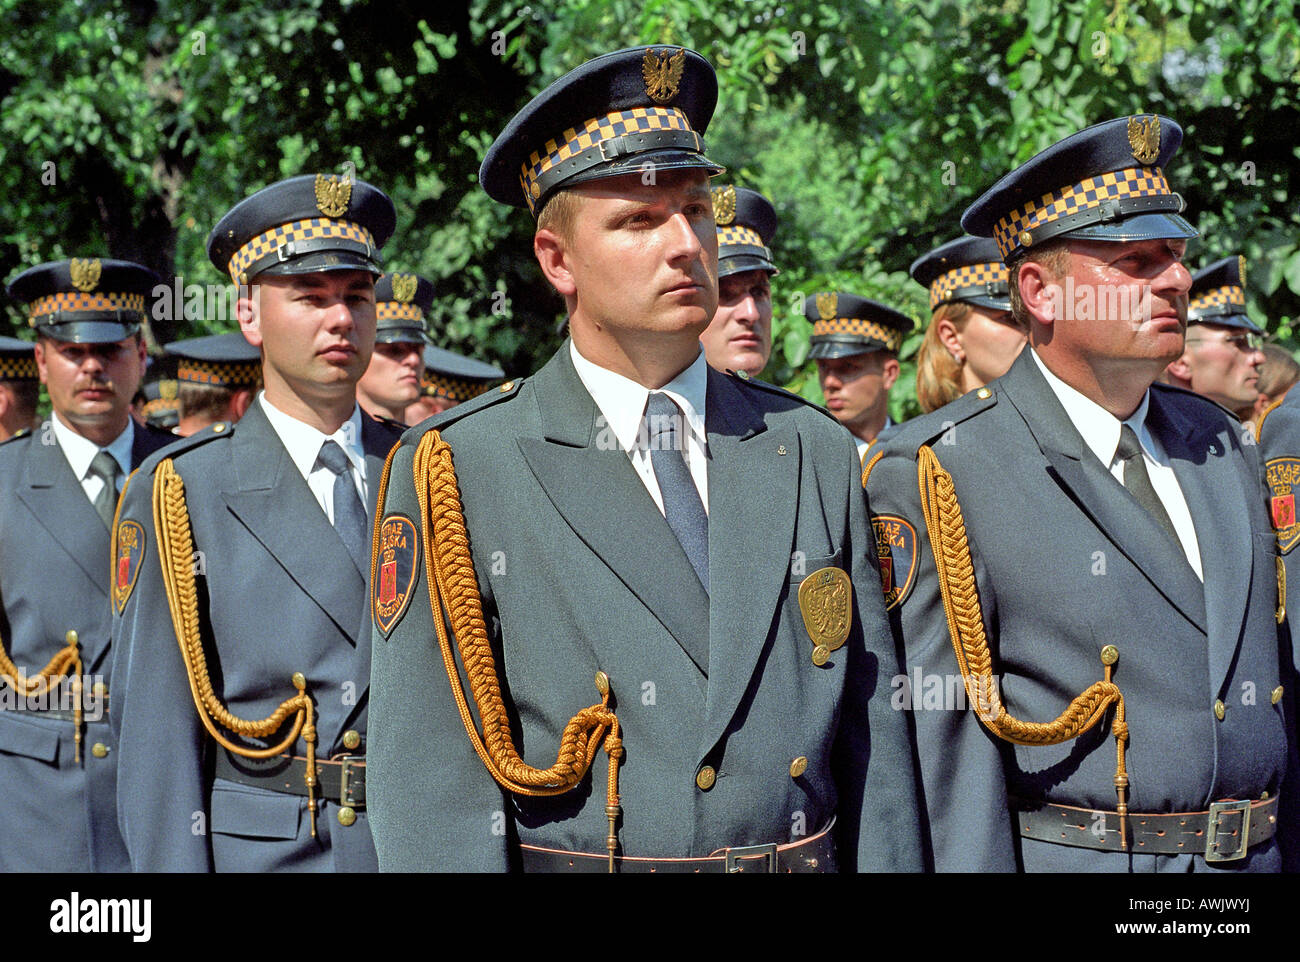 Delegation of municipal police at the 60th Anniversary of the Warsaw Uprising, Warsaw, Poland - Stock Image